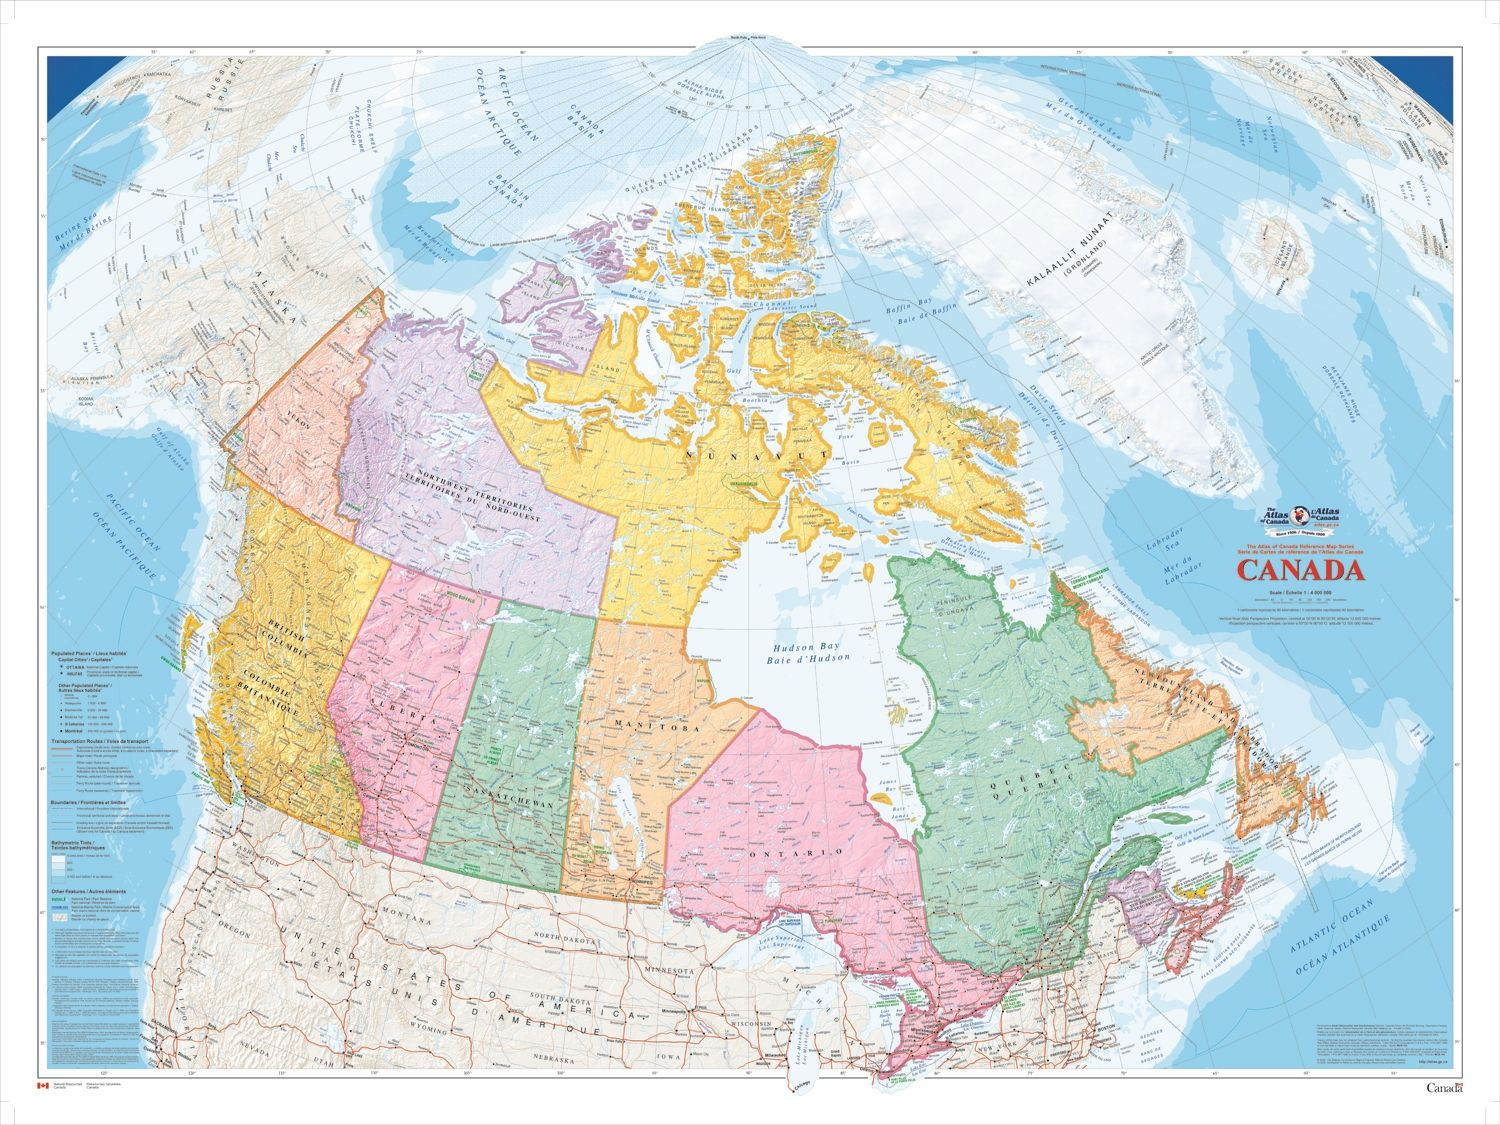 Map 0f Canada.Canada Political Natural Resources Wall Map Xl The Largest Of The